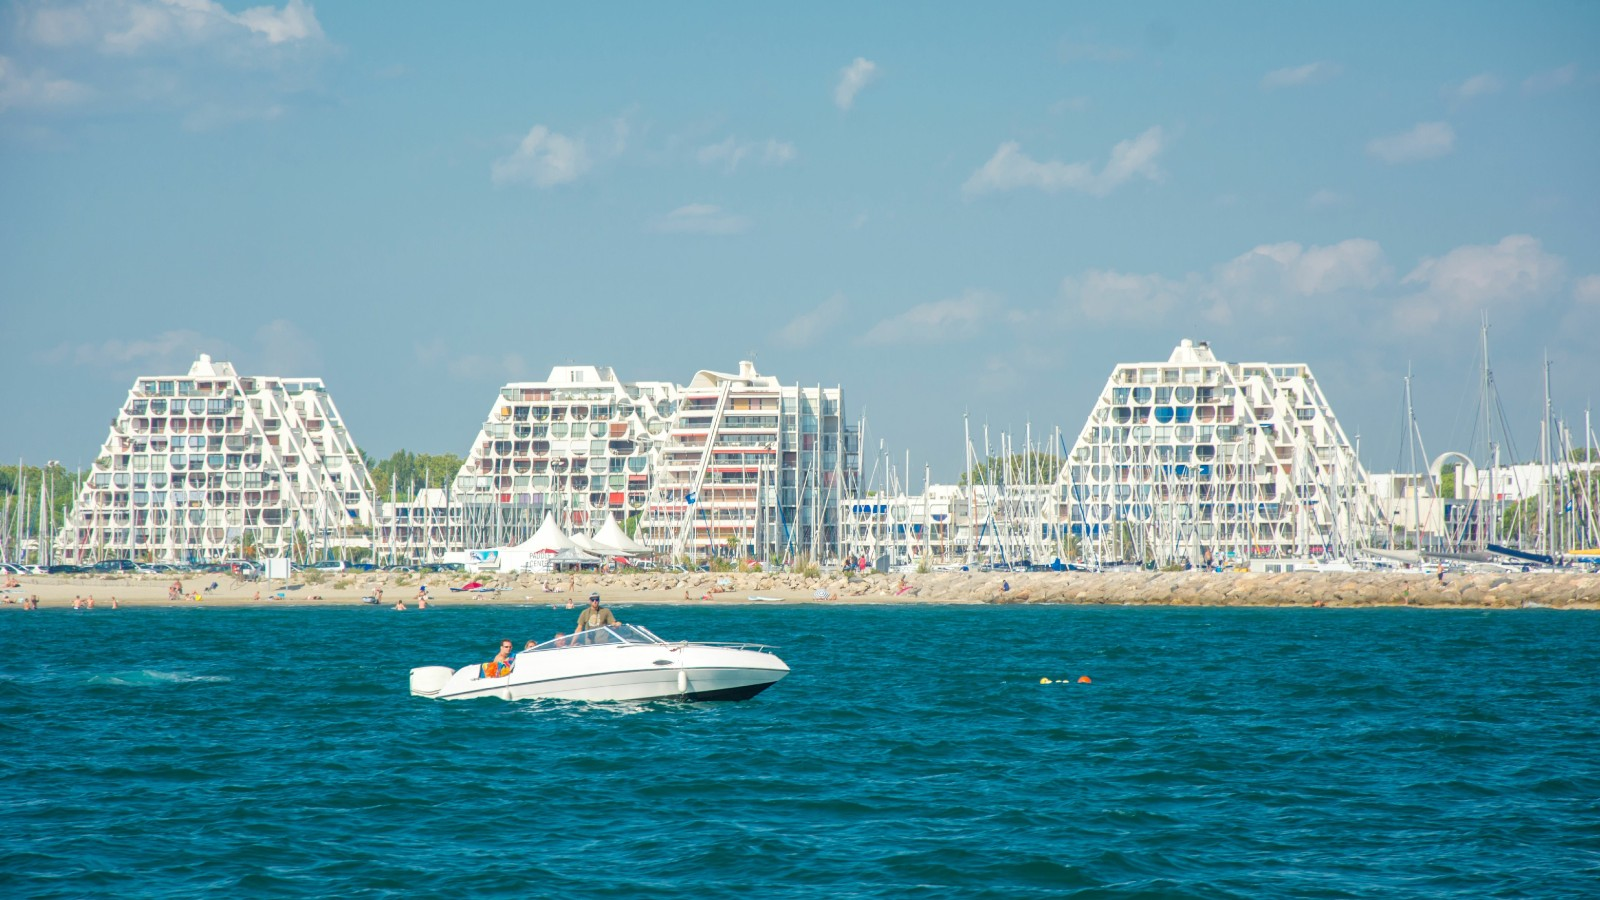 White triangular shaped buildings sitting on a sandy beach with blue skies